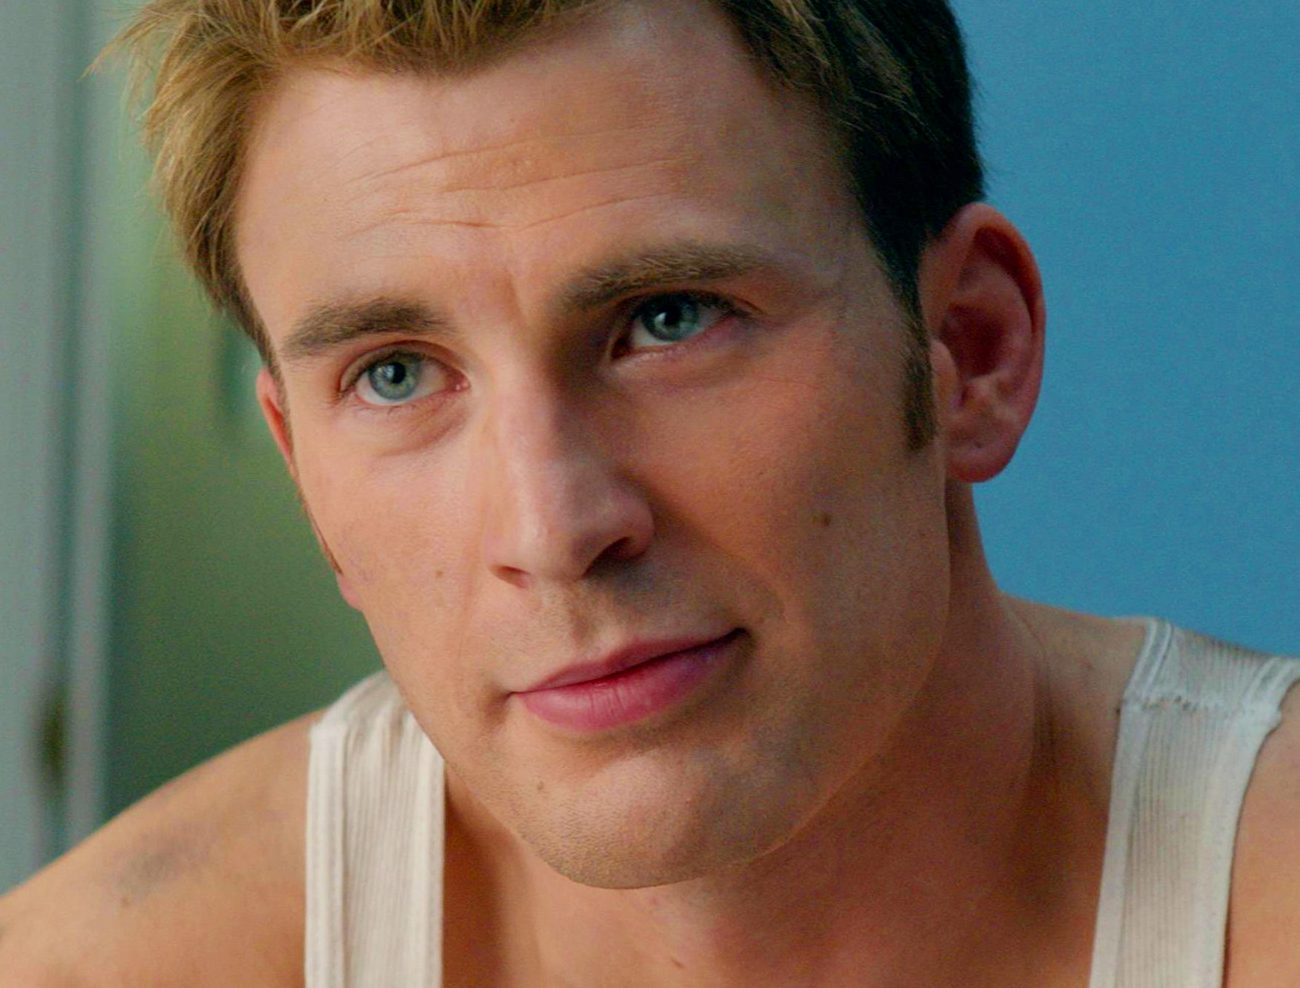 captain america chris evans e1625668922862 20 Things You Didn't Know About Chris Evans